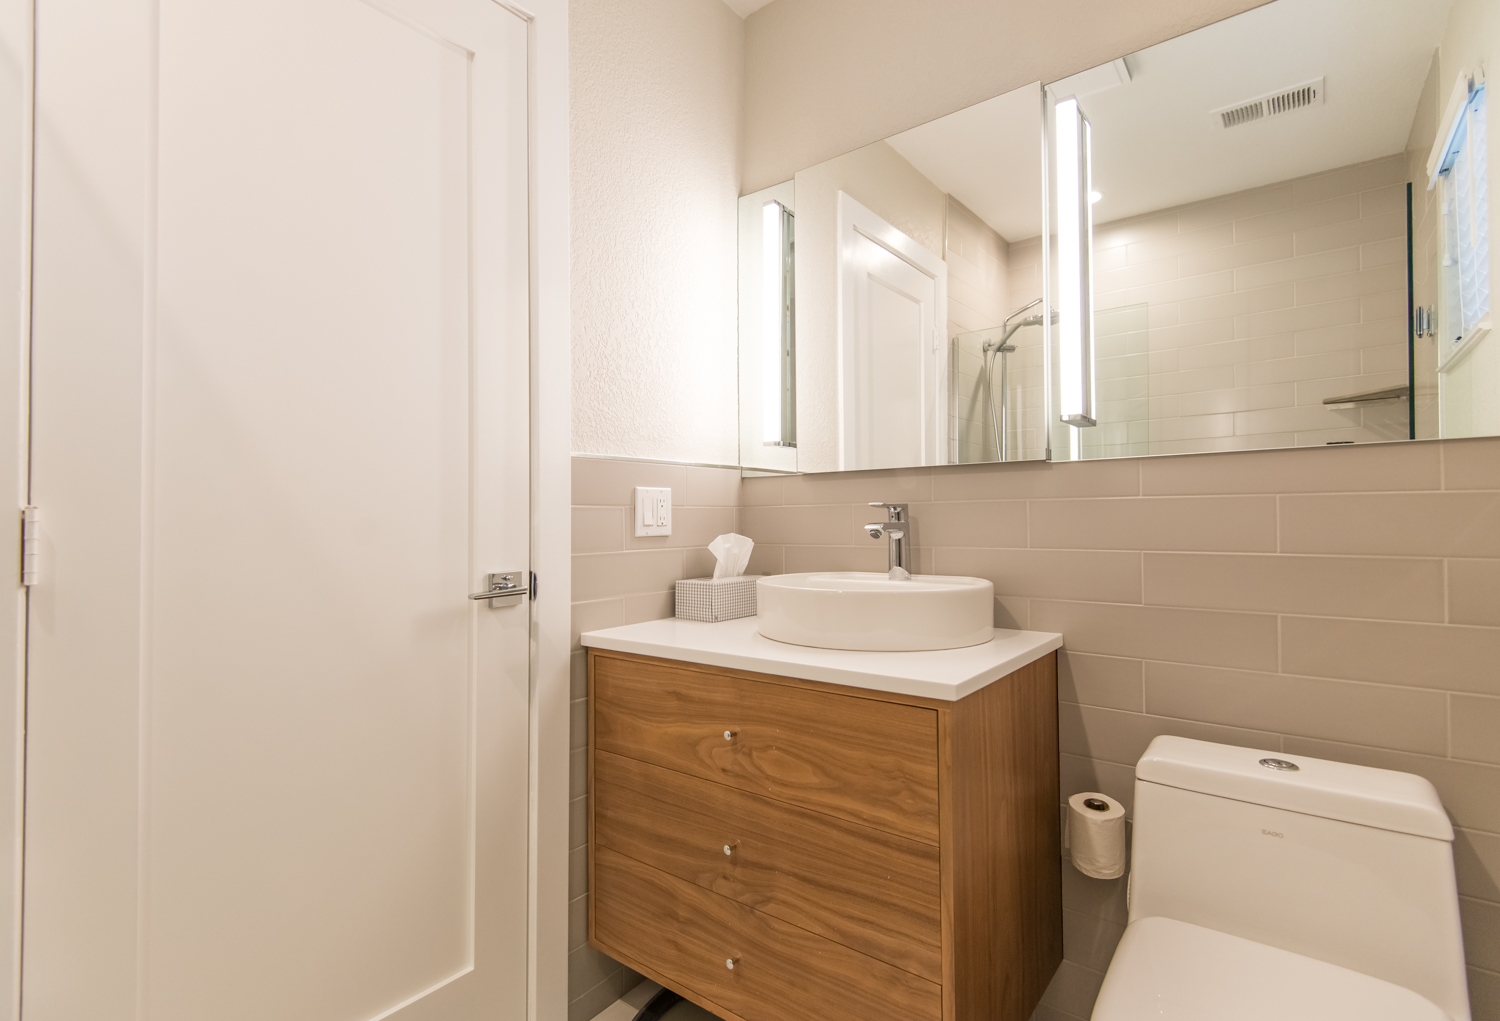 Second bath features new cabinets, Corian countertops and high-end fixtures.